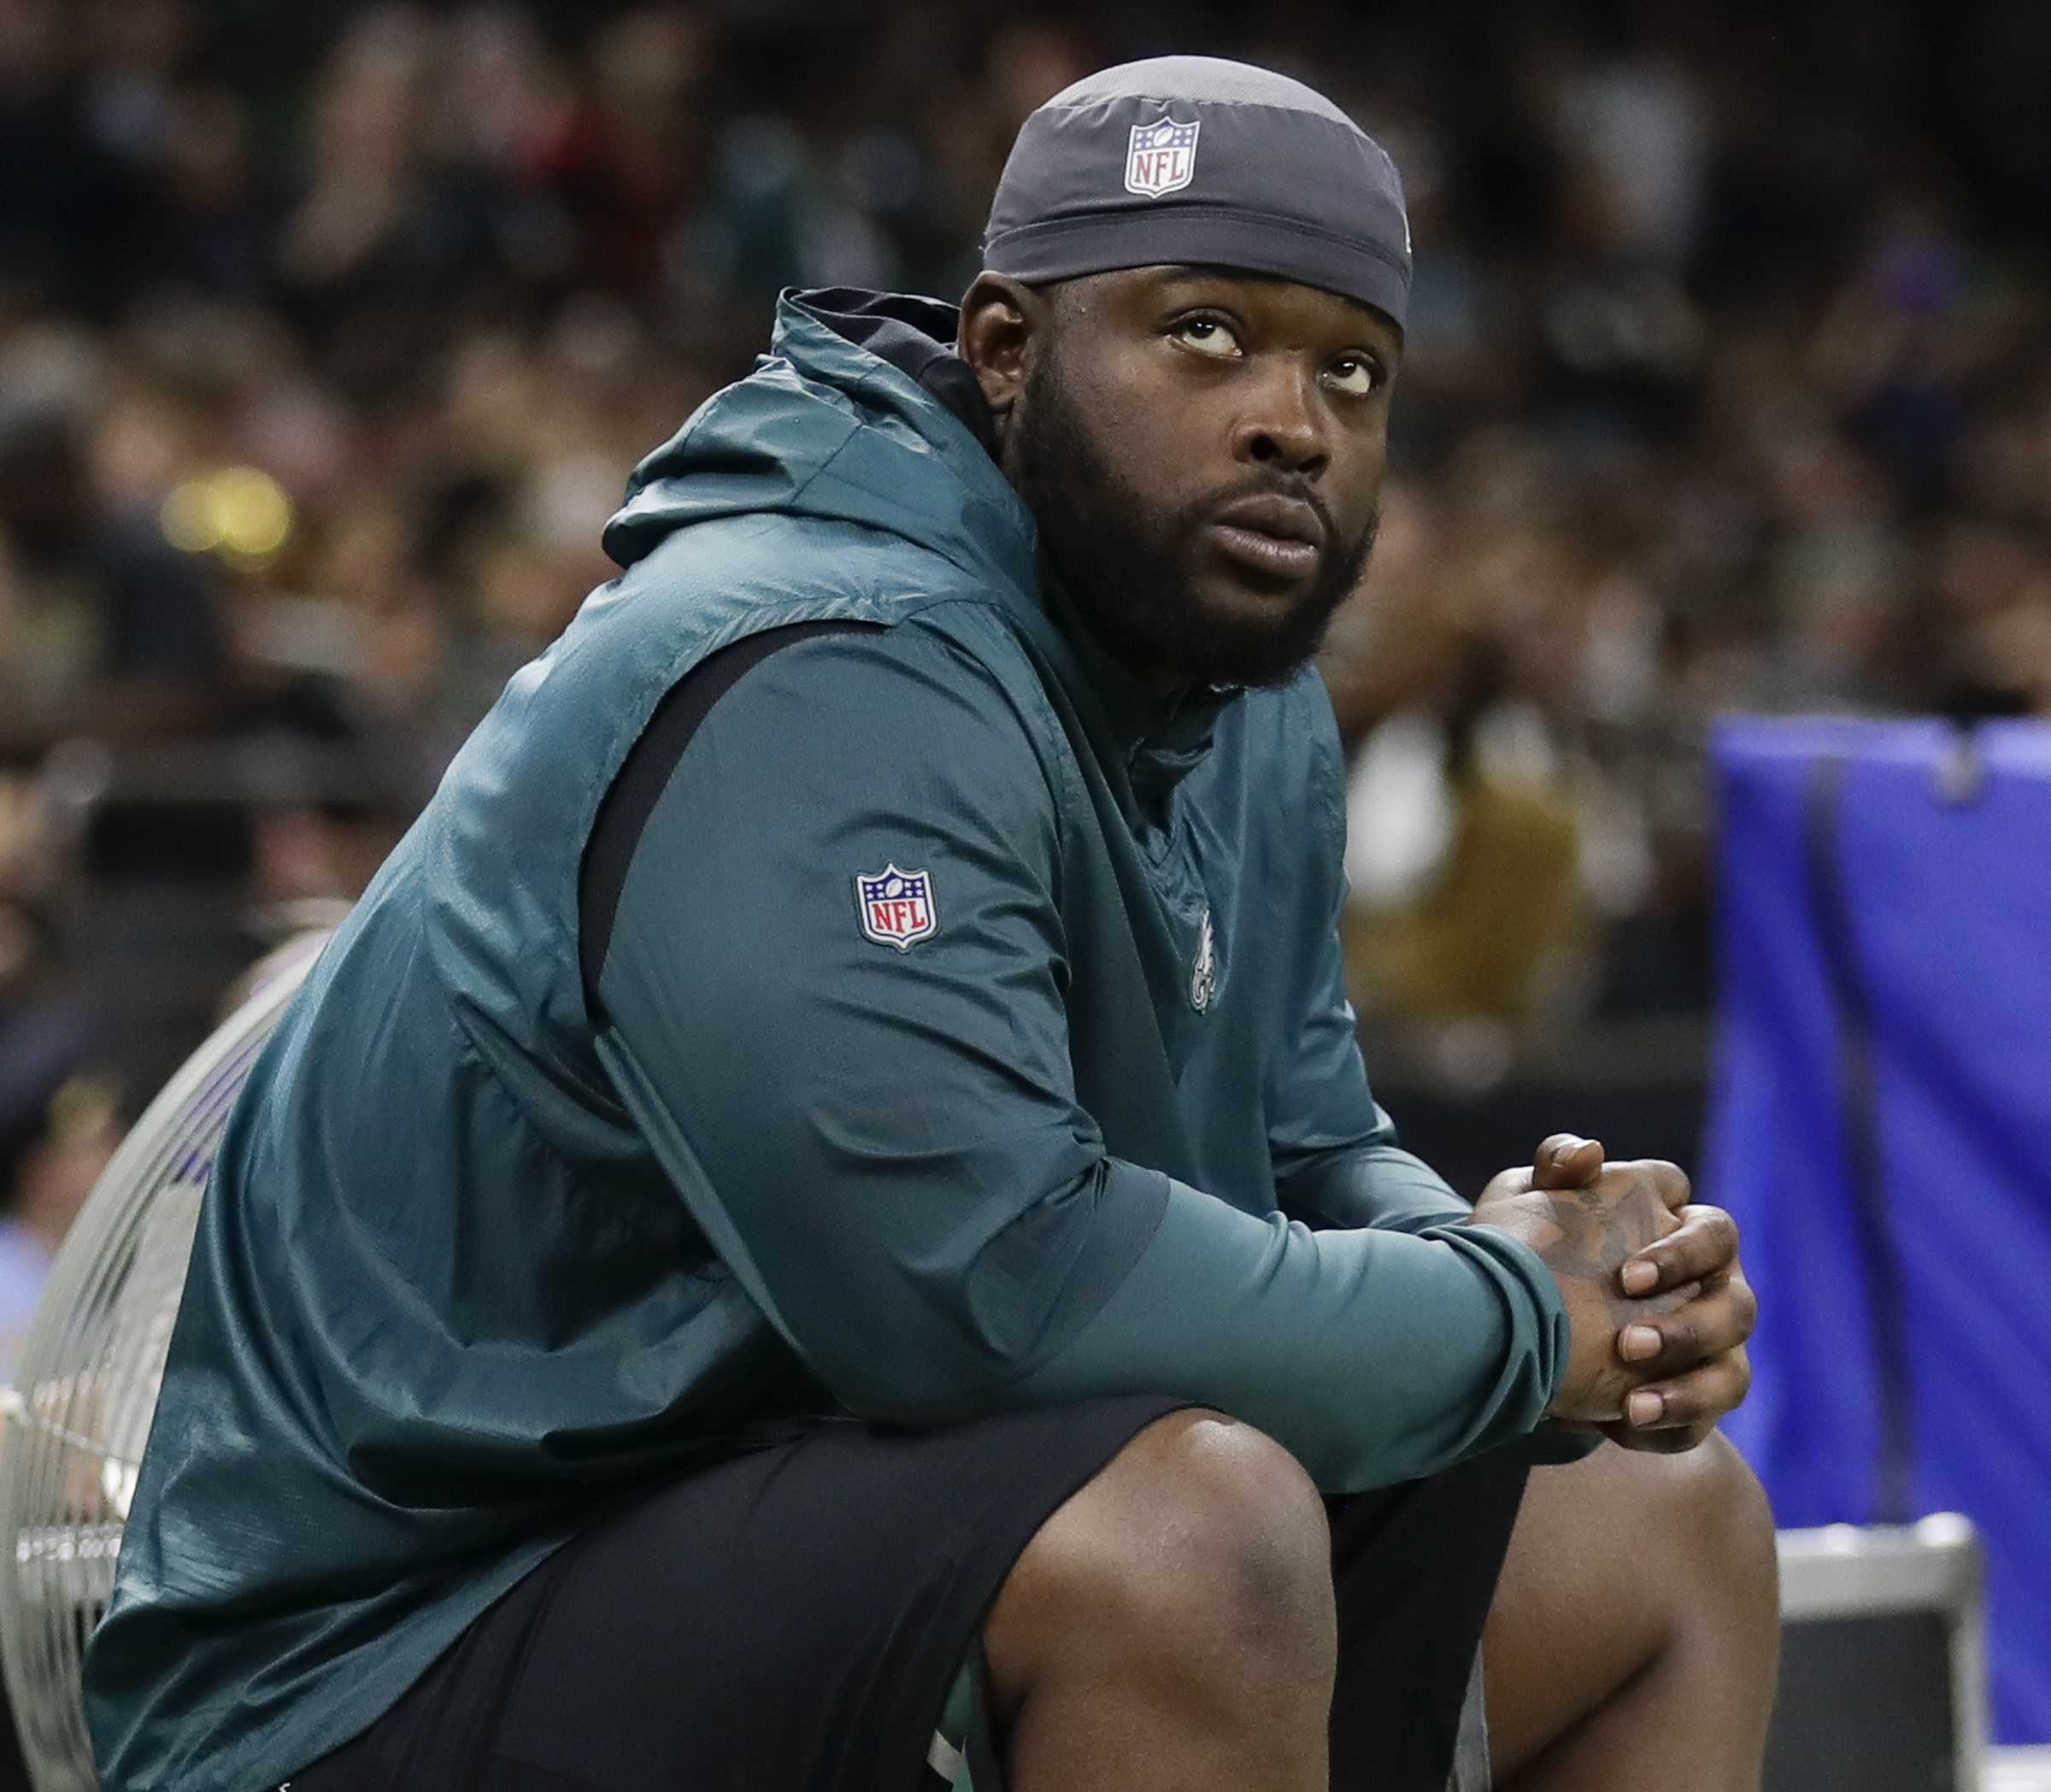 Eagles defensive tackle Tim Jernigan played 20 snaps against the Giants.